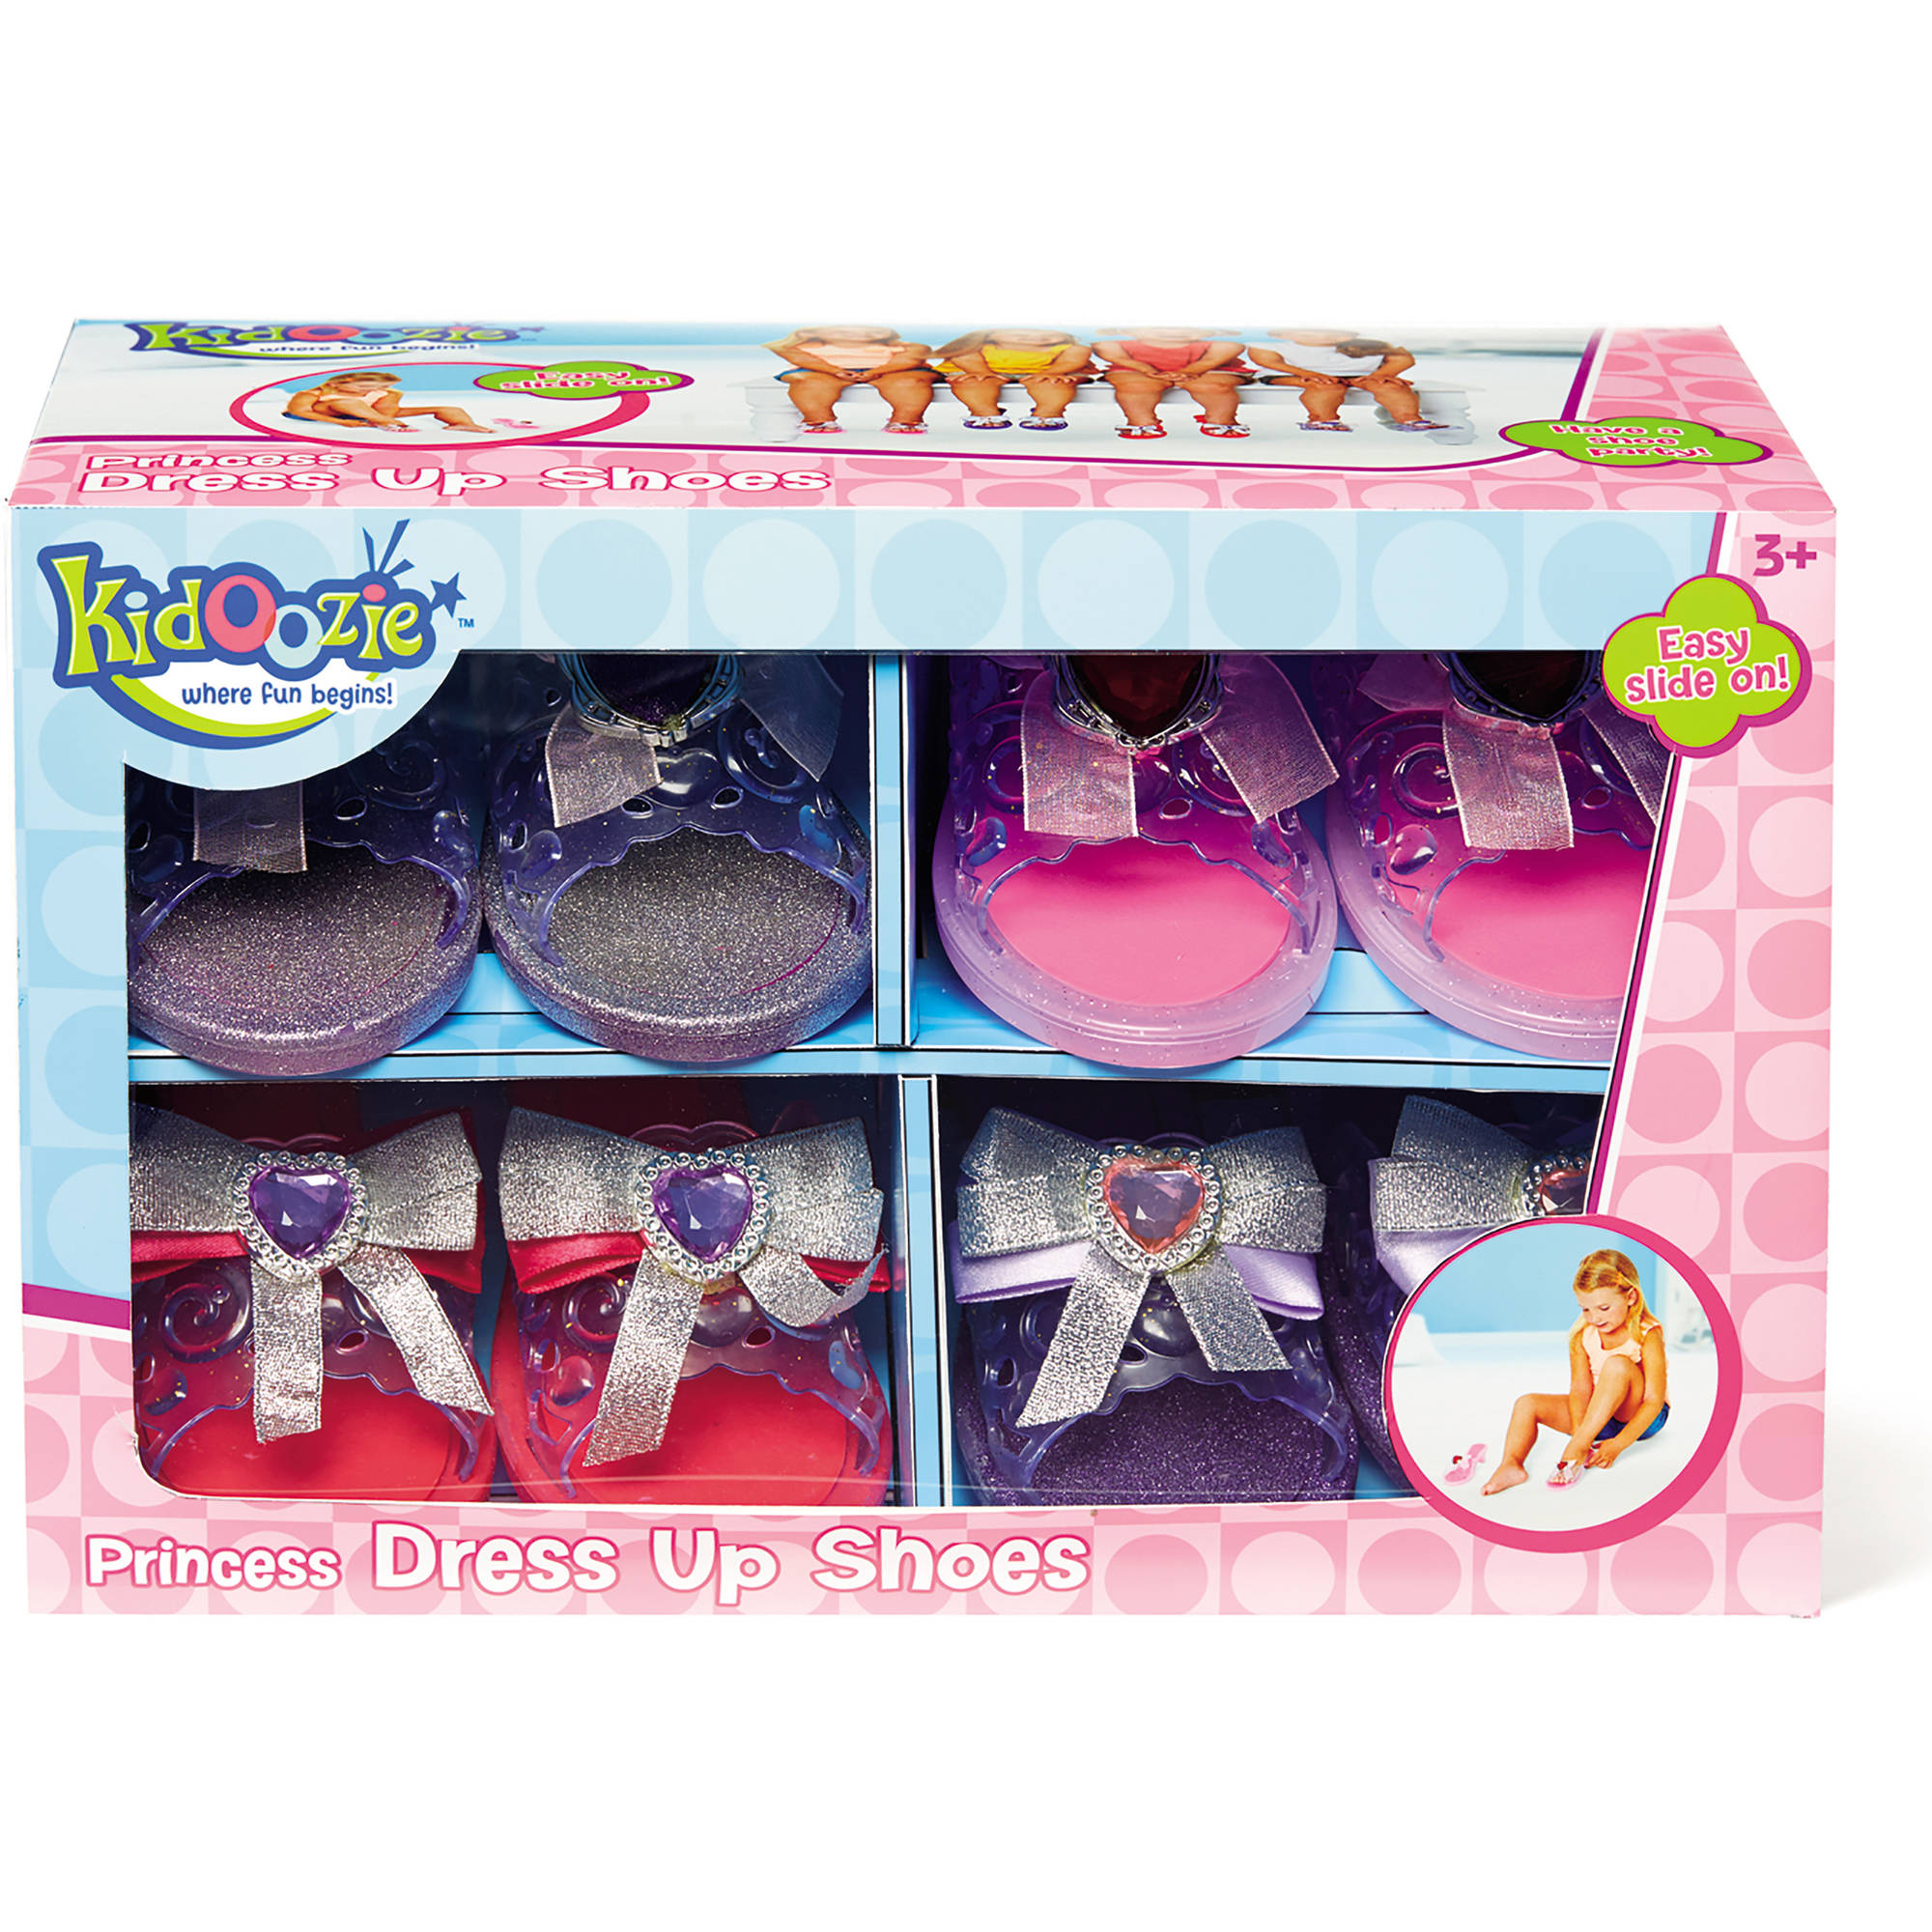 Kidoozie Princess Dress Up Shoes by International Playthings, LLC